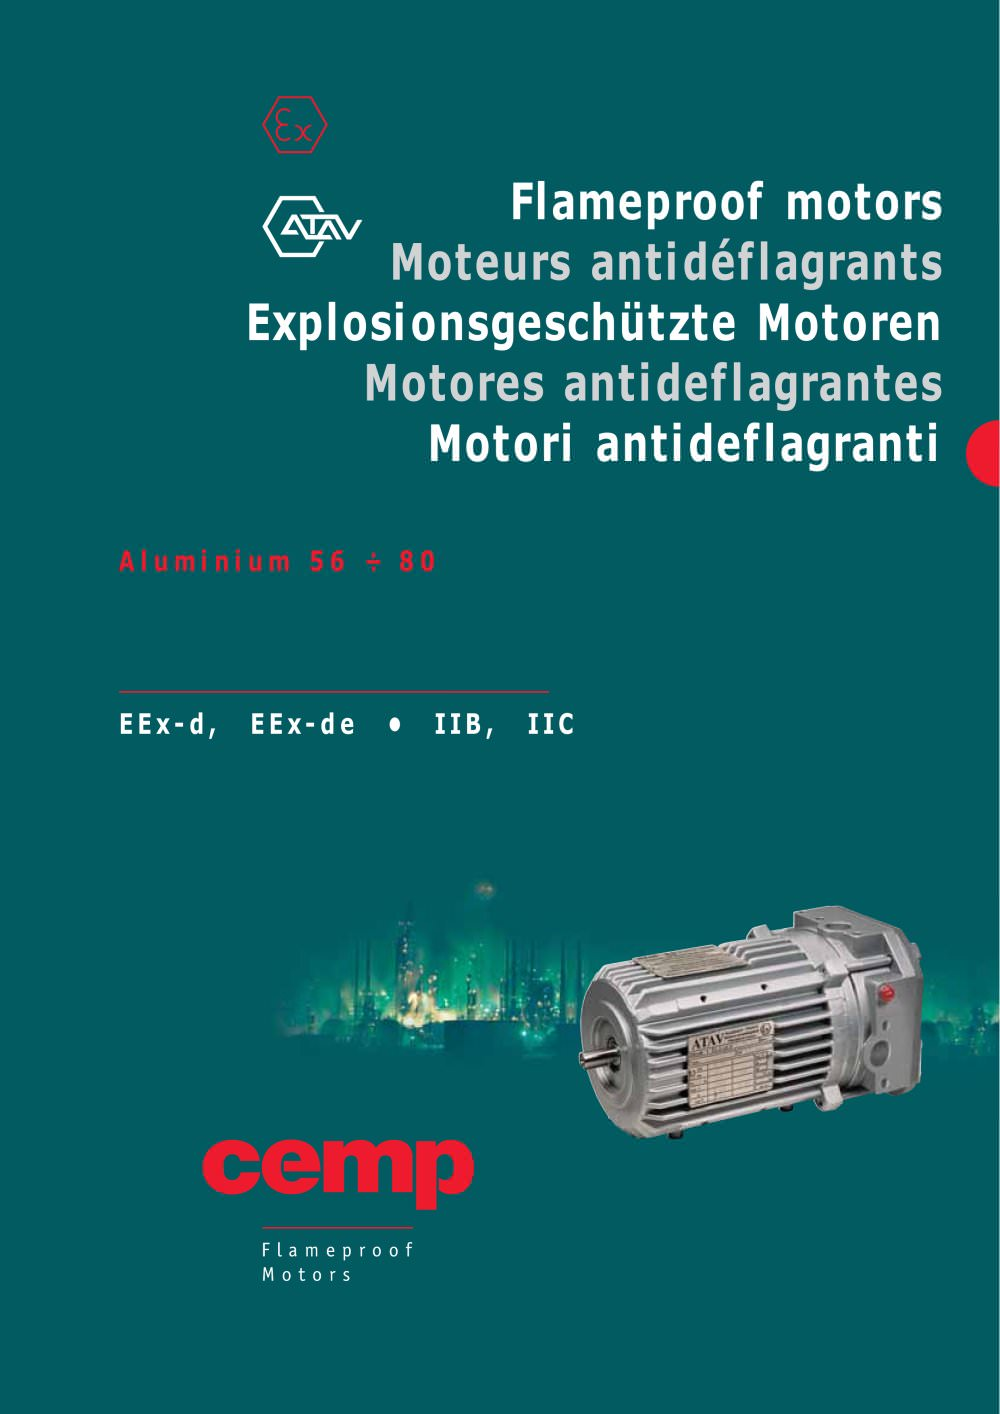 Atav-Flameproof Motors - series F 56-80 - Cemp srl - PDF Catalogue ...